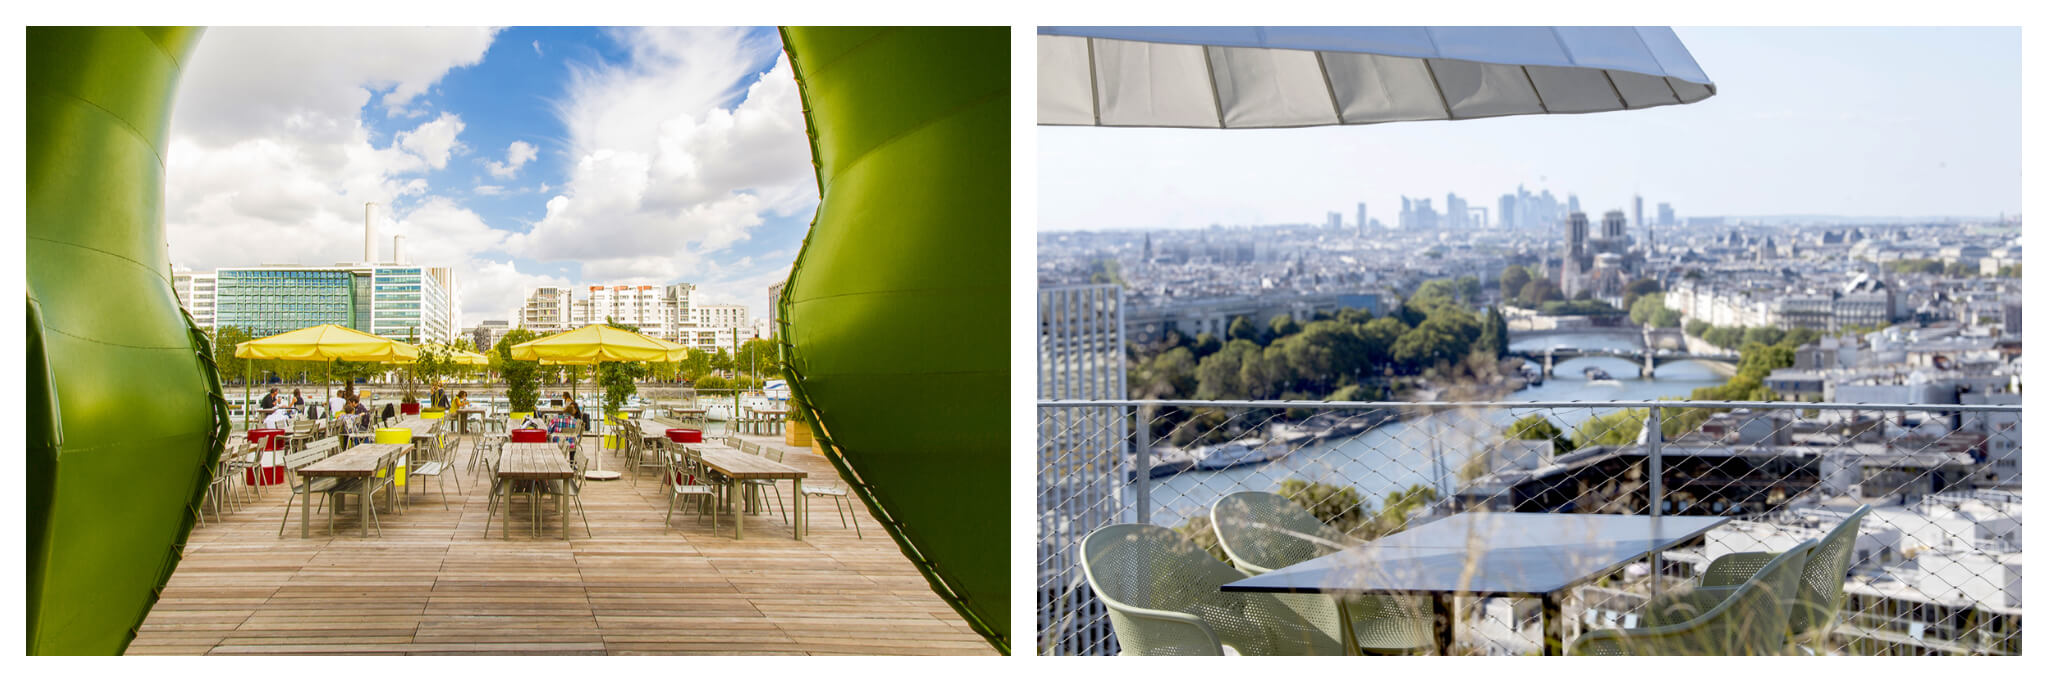 Left: the image is framed by a green, curved archway. It is the wooden terrace of Wanderlust Street Food. There are wooden tables and yellow umbrellas. You can see modern Paris buildings in the background. Right: A table and four chairs on a rooftop, underneath an umbrella, with a view of the Seine and Paris in the background. You can see La Defense in the distance.